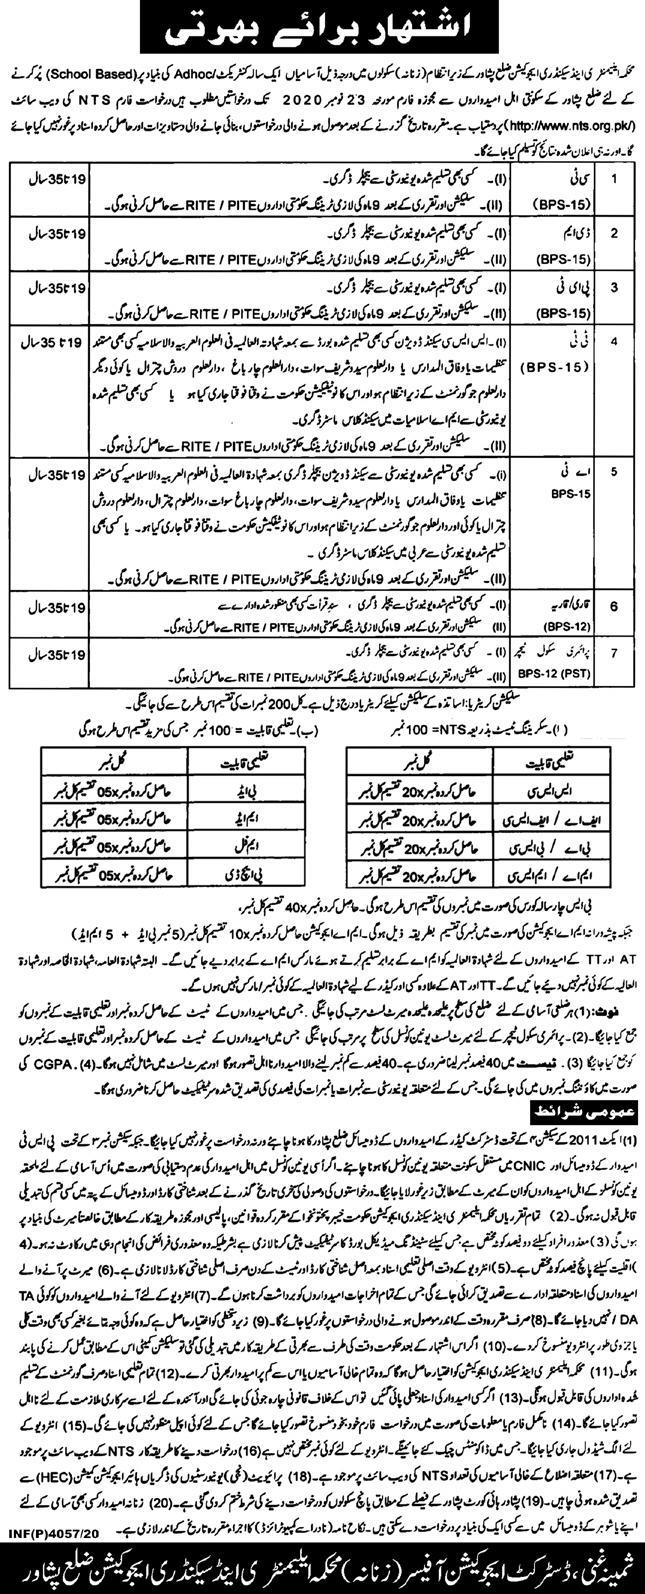 ESED Peshawar Jobs November 2020 via NTS